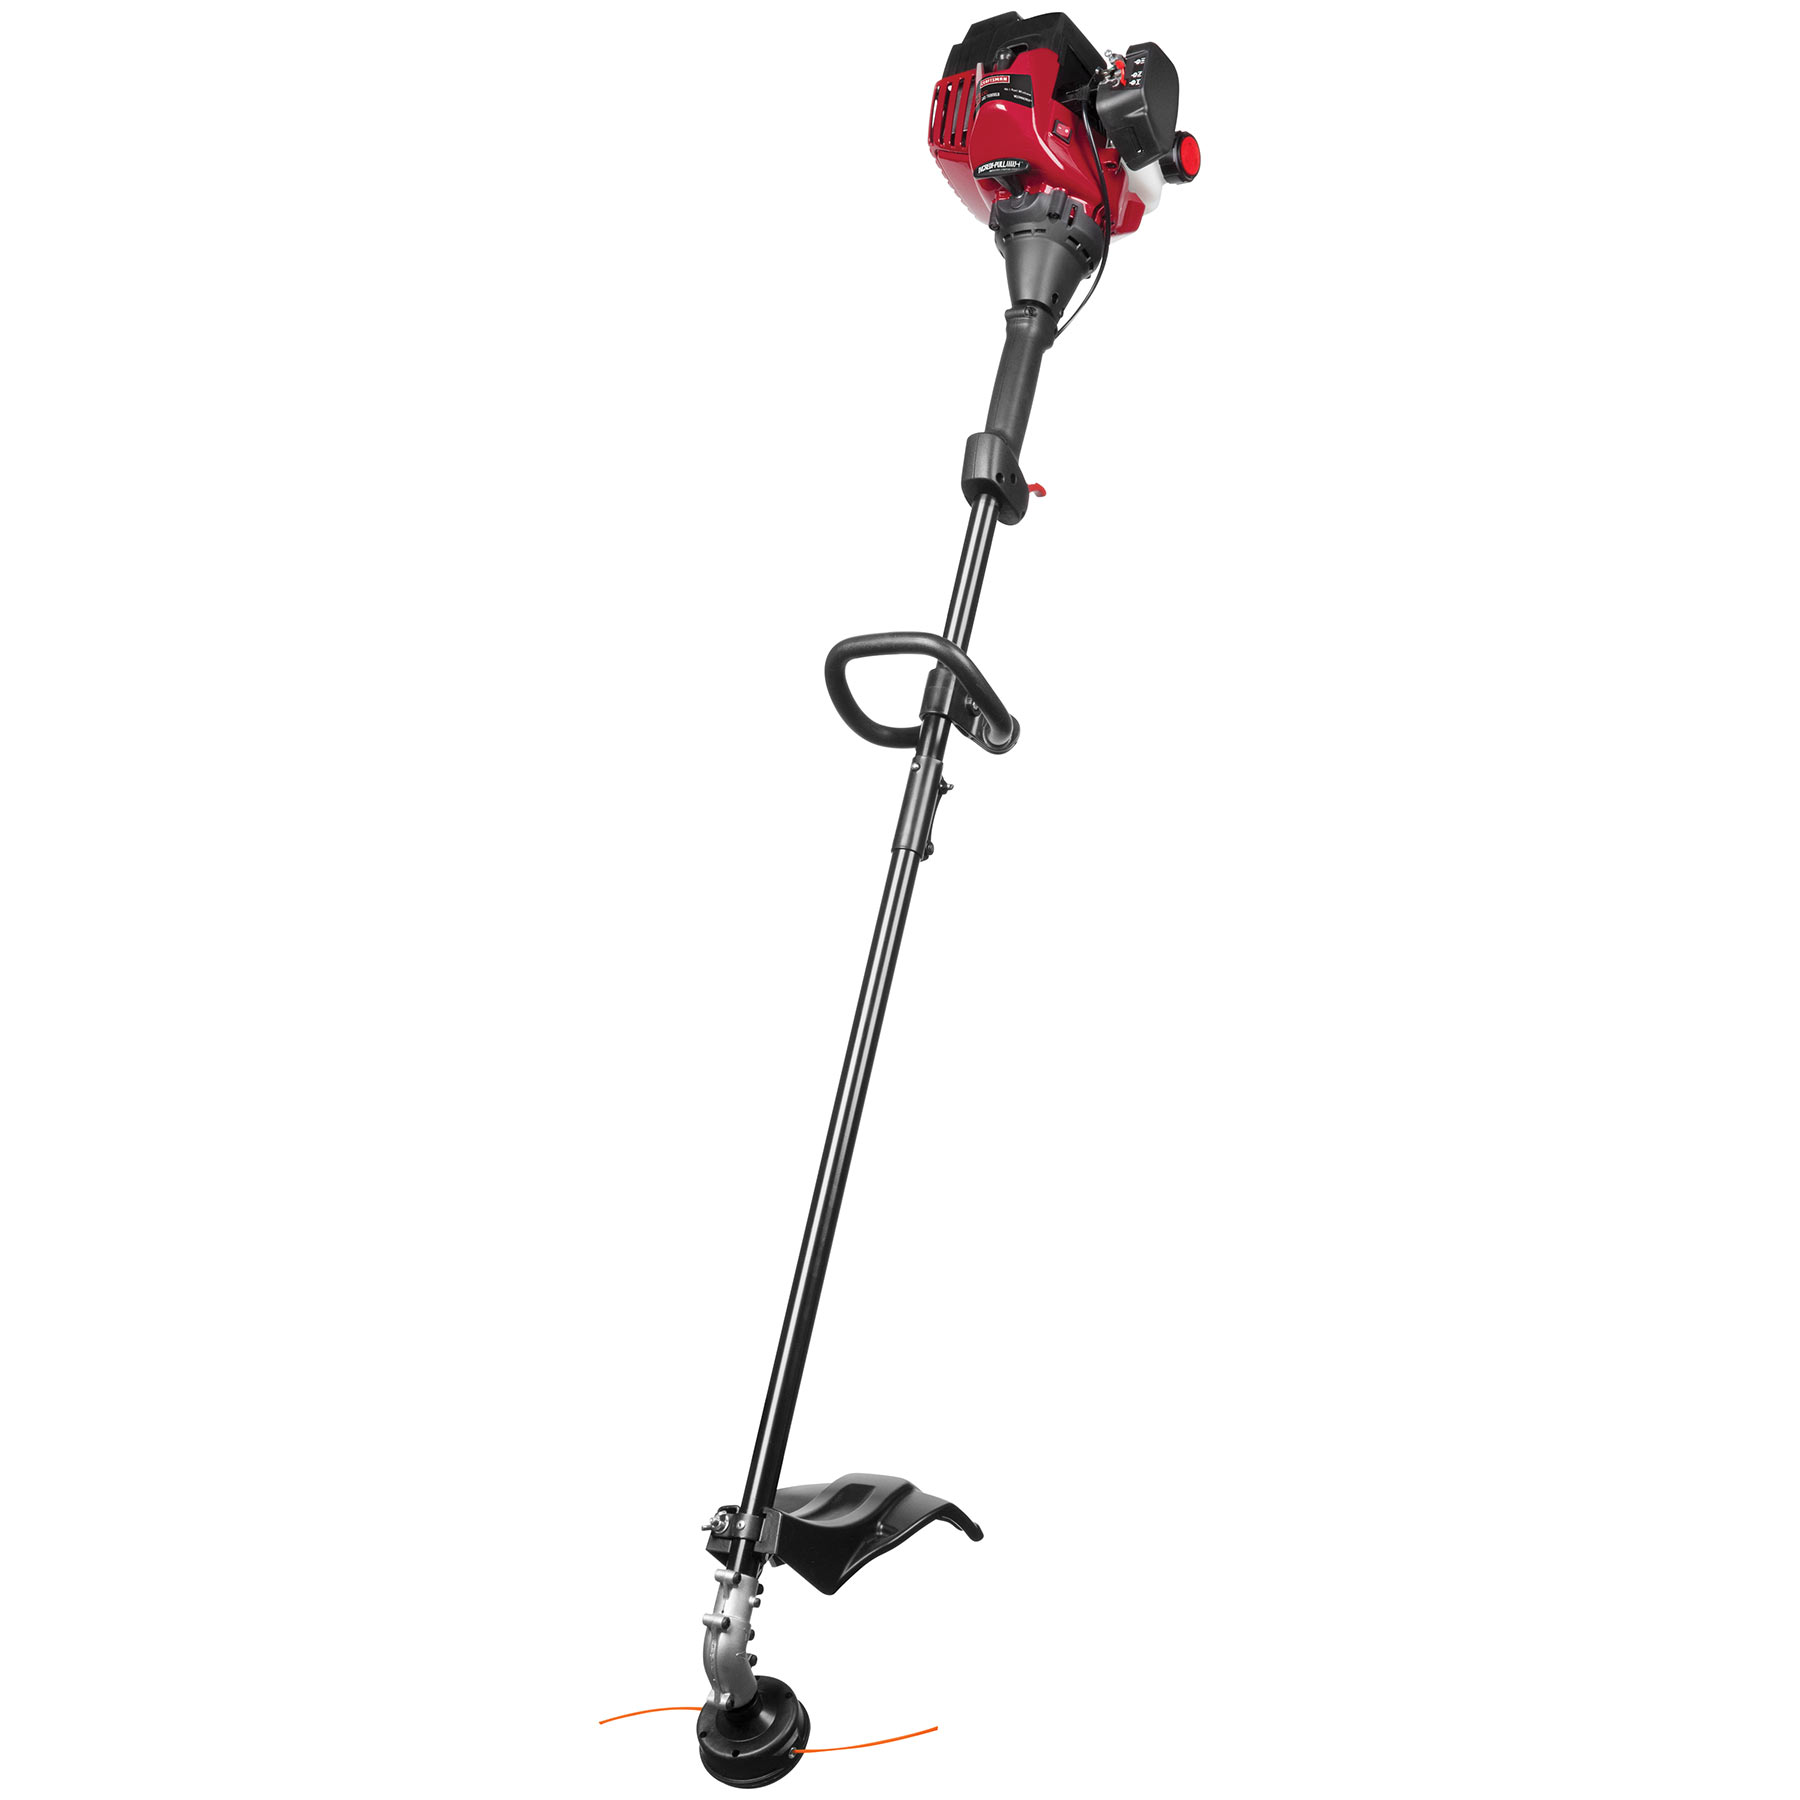 Craftsman 79447 2-Cycle 25cc Gas Weedwacker with Straight